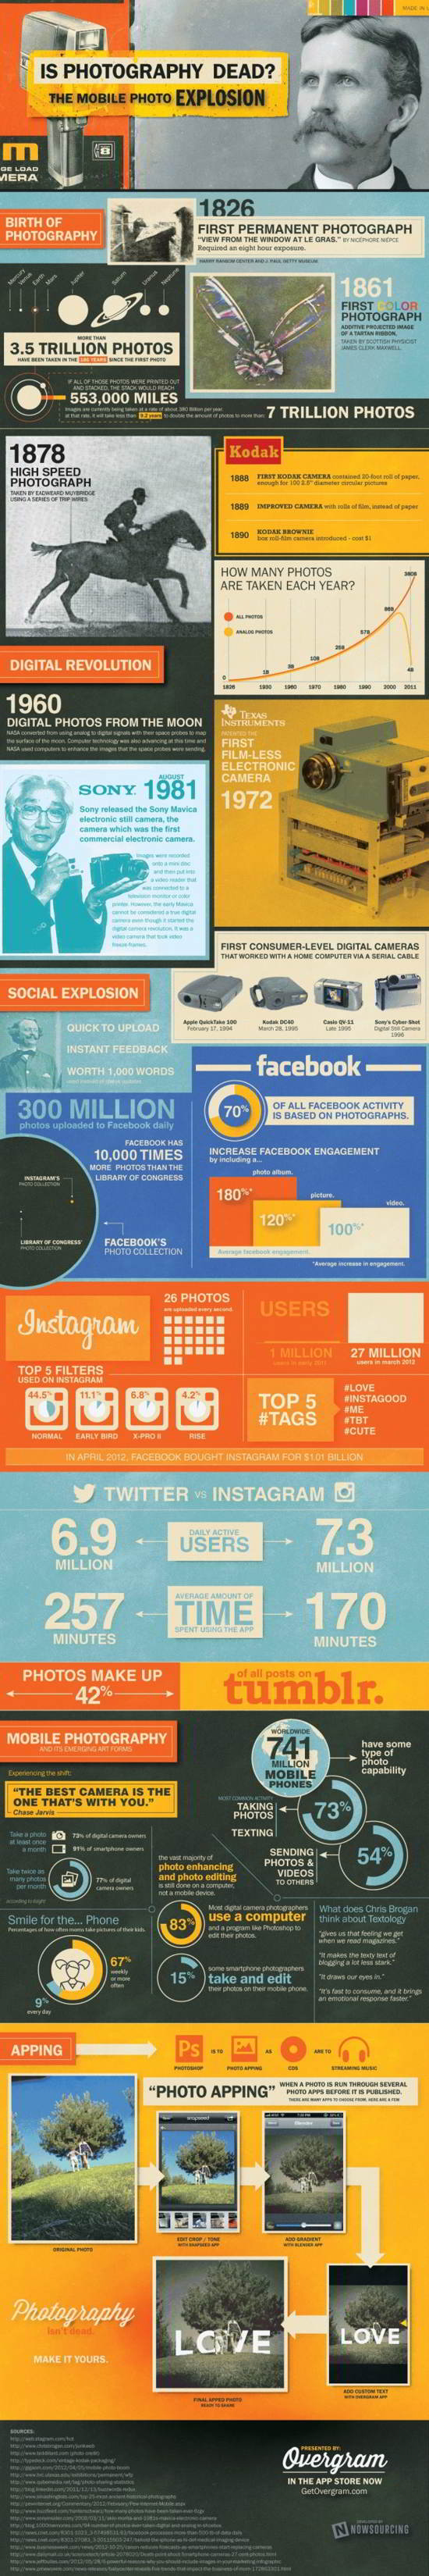 05 The Mobile Photo Explosion Infographic